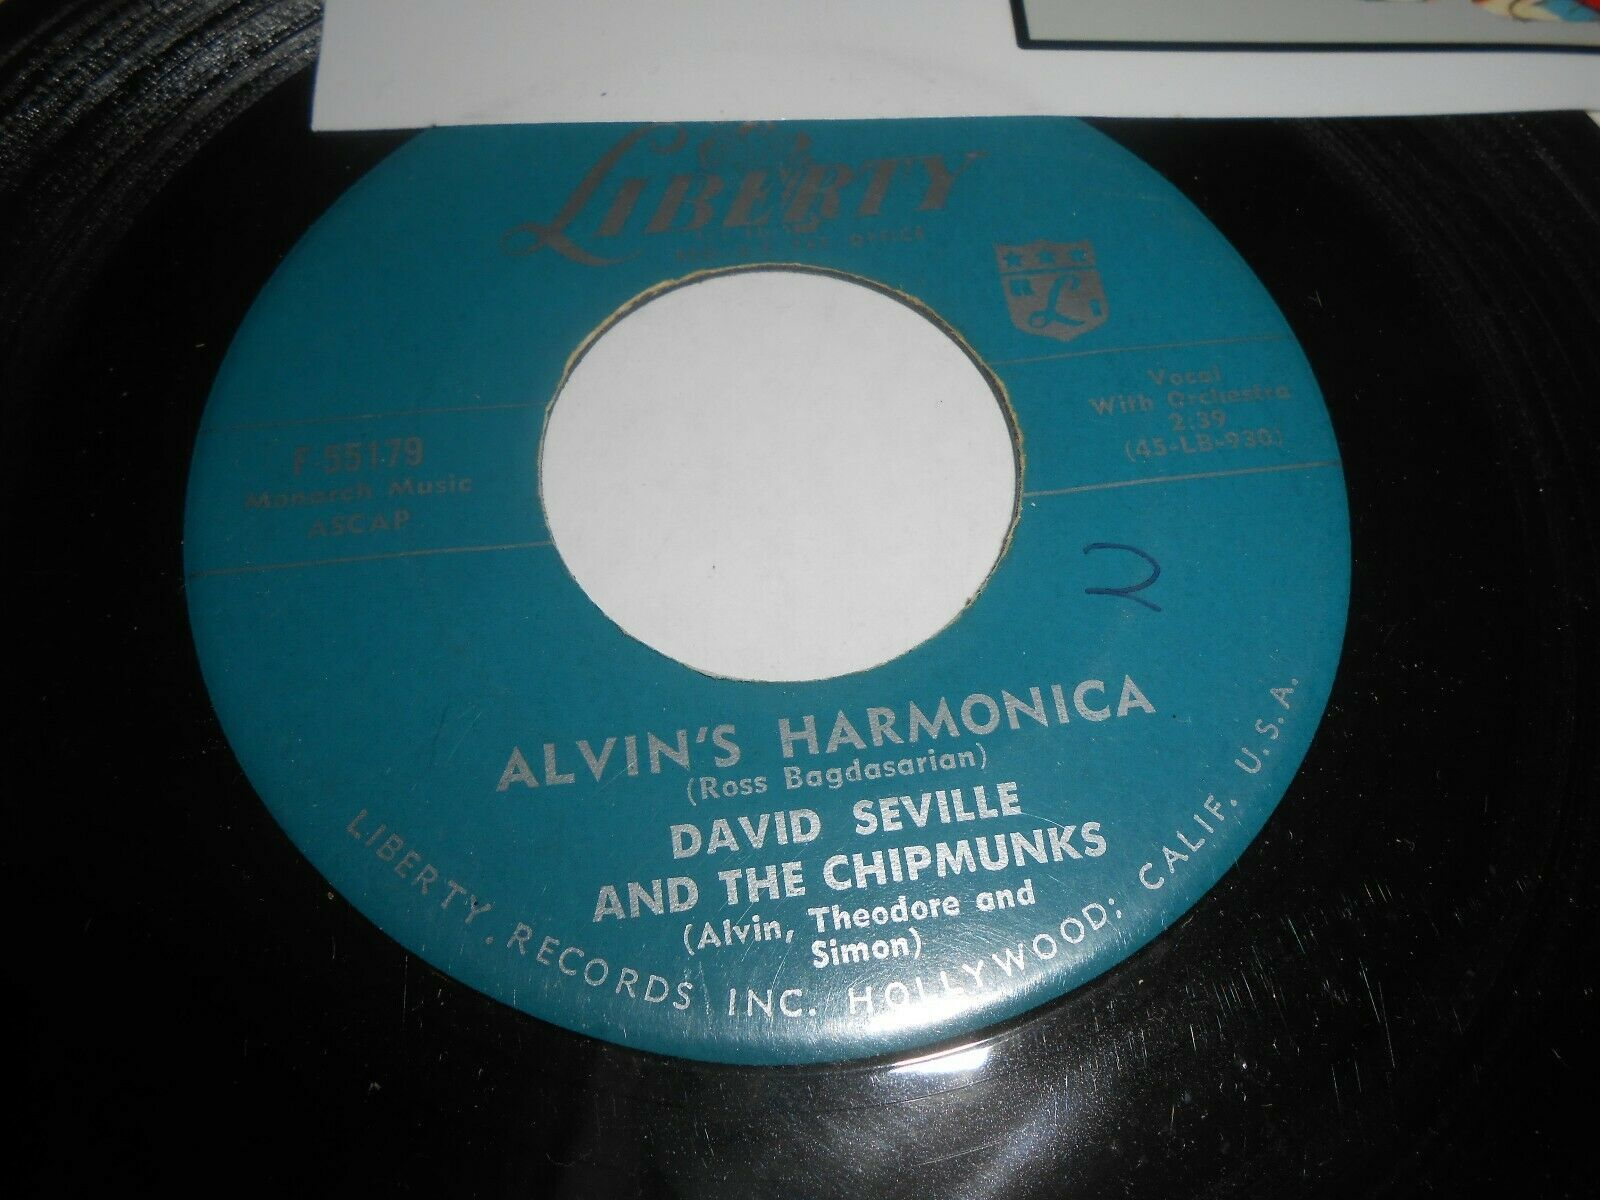 David Seville and The Chipmunks Alvin's Harmonica 45 rpm Record 1959 Liberty